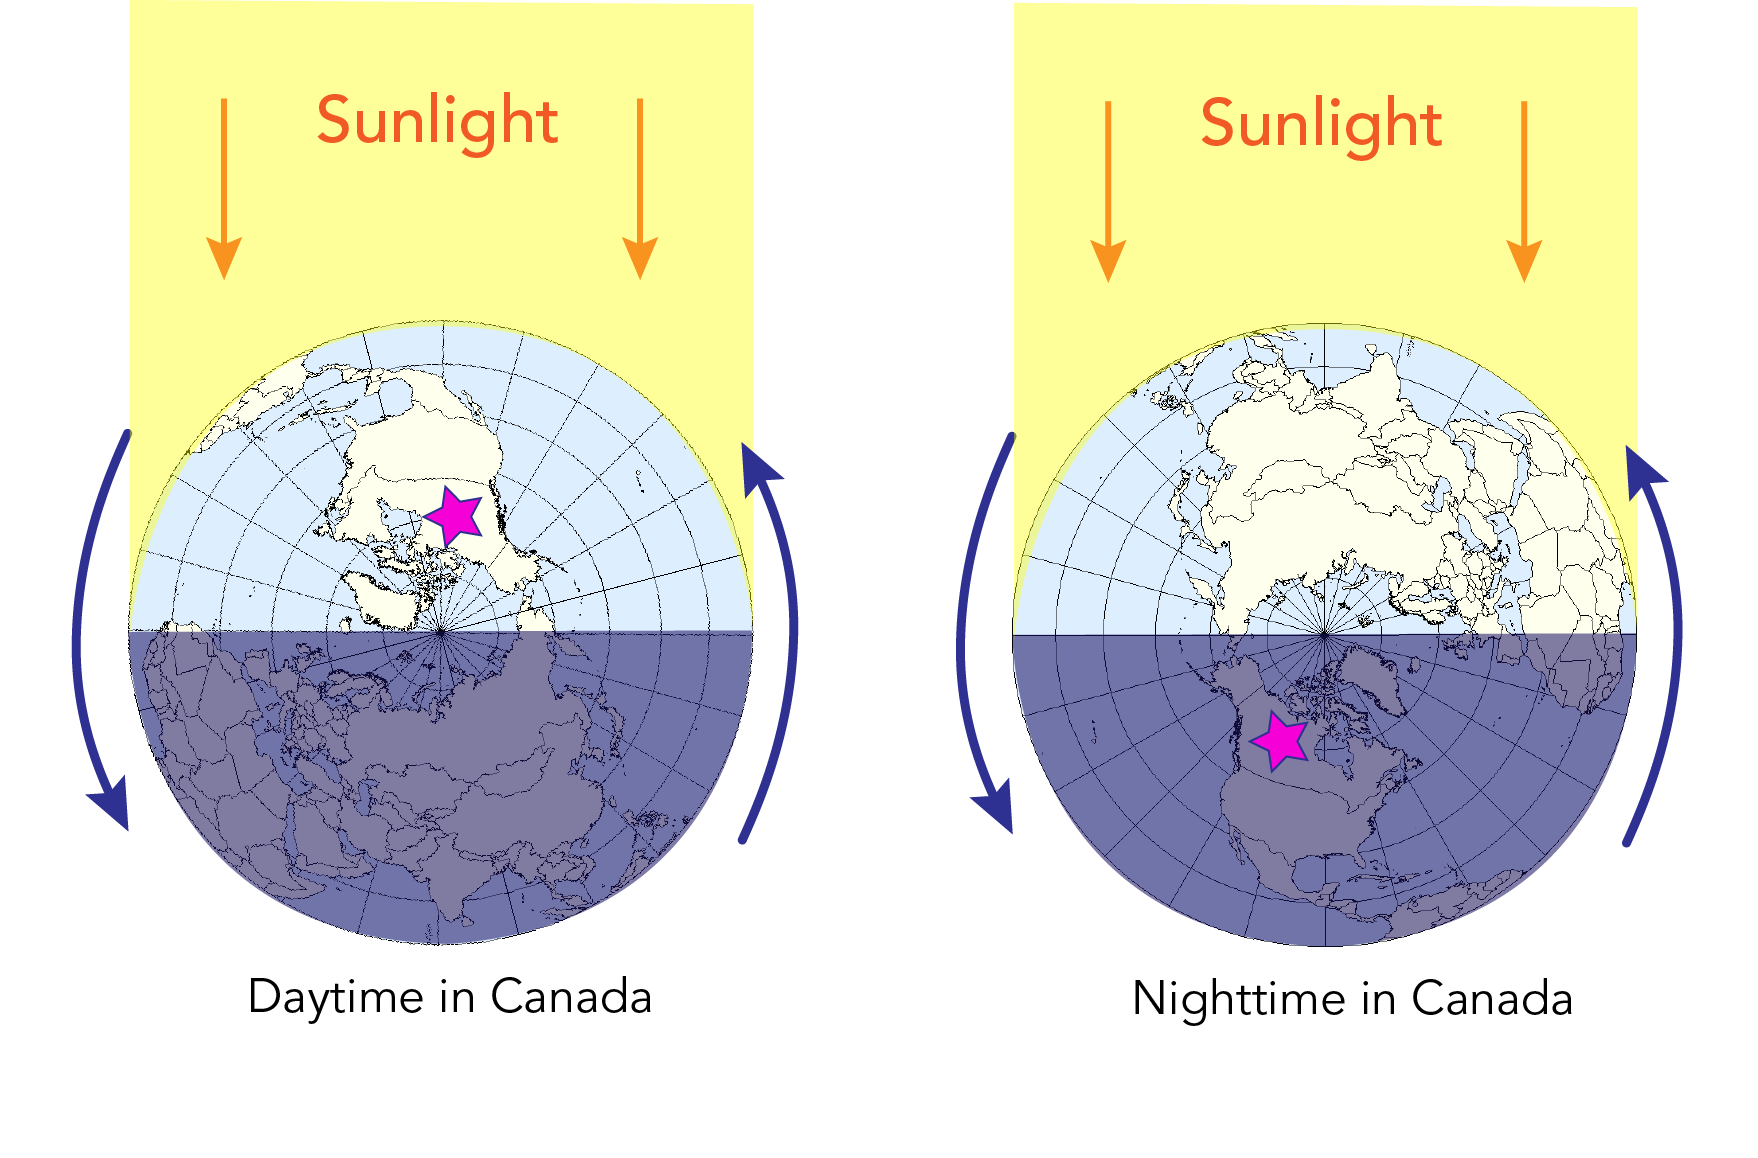 Diagram showing how the Earth's rotation on its axis causes day and night